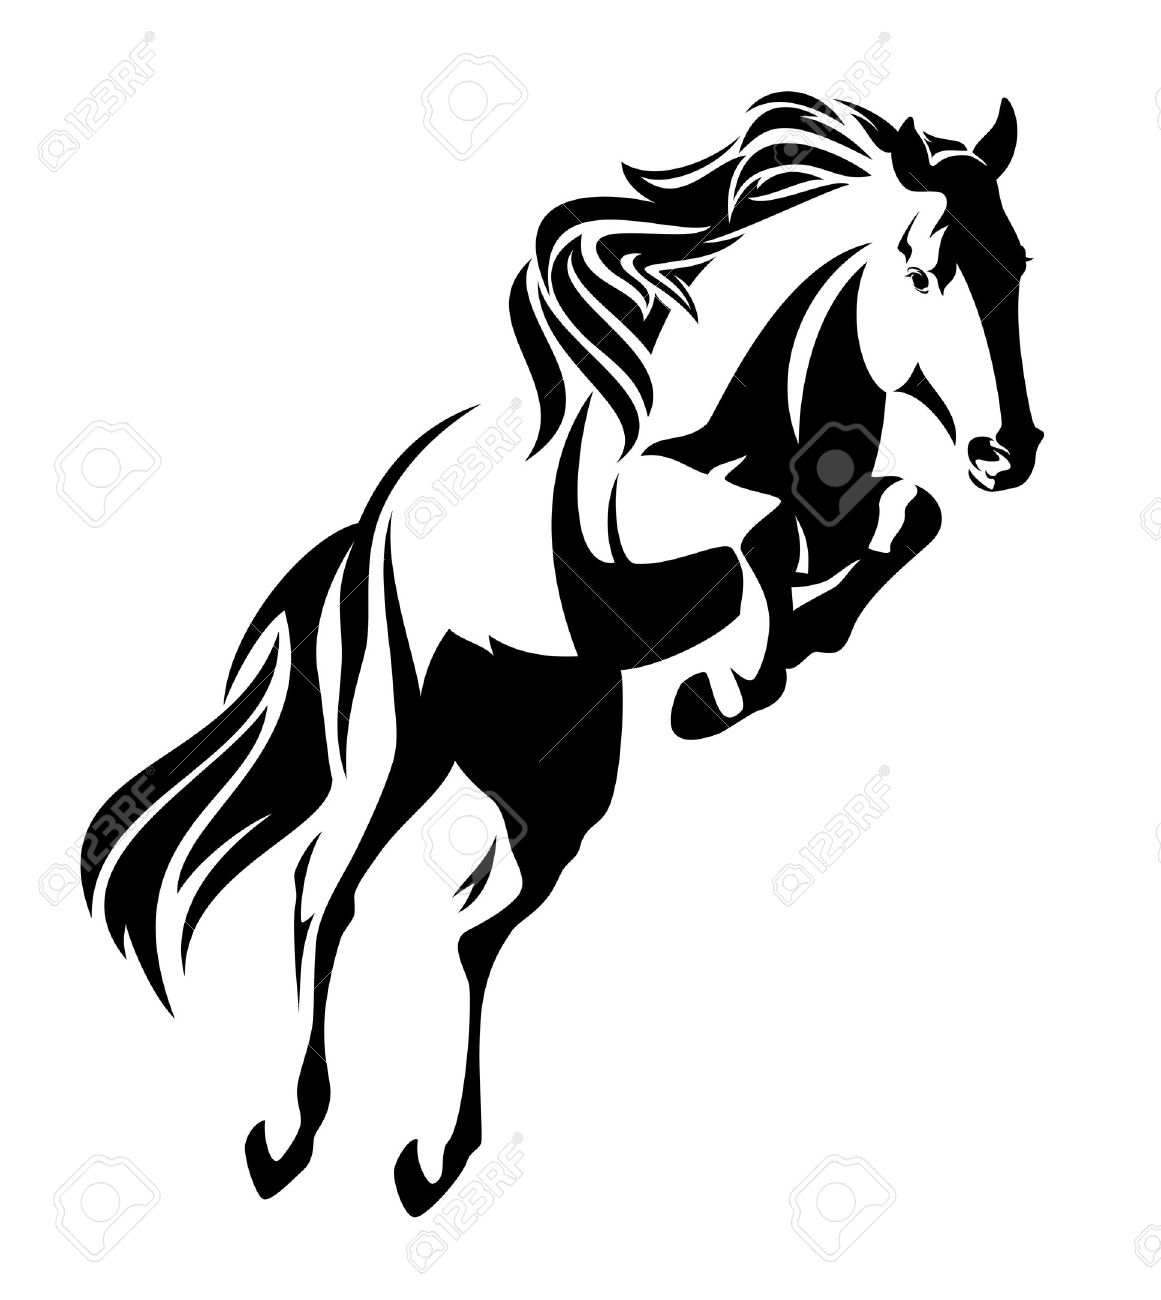 Jumping Horse Black And White Vector Outline Monochrome Equine Royalty Free Cliparts Vectors And Stock Illustration Image 68815856